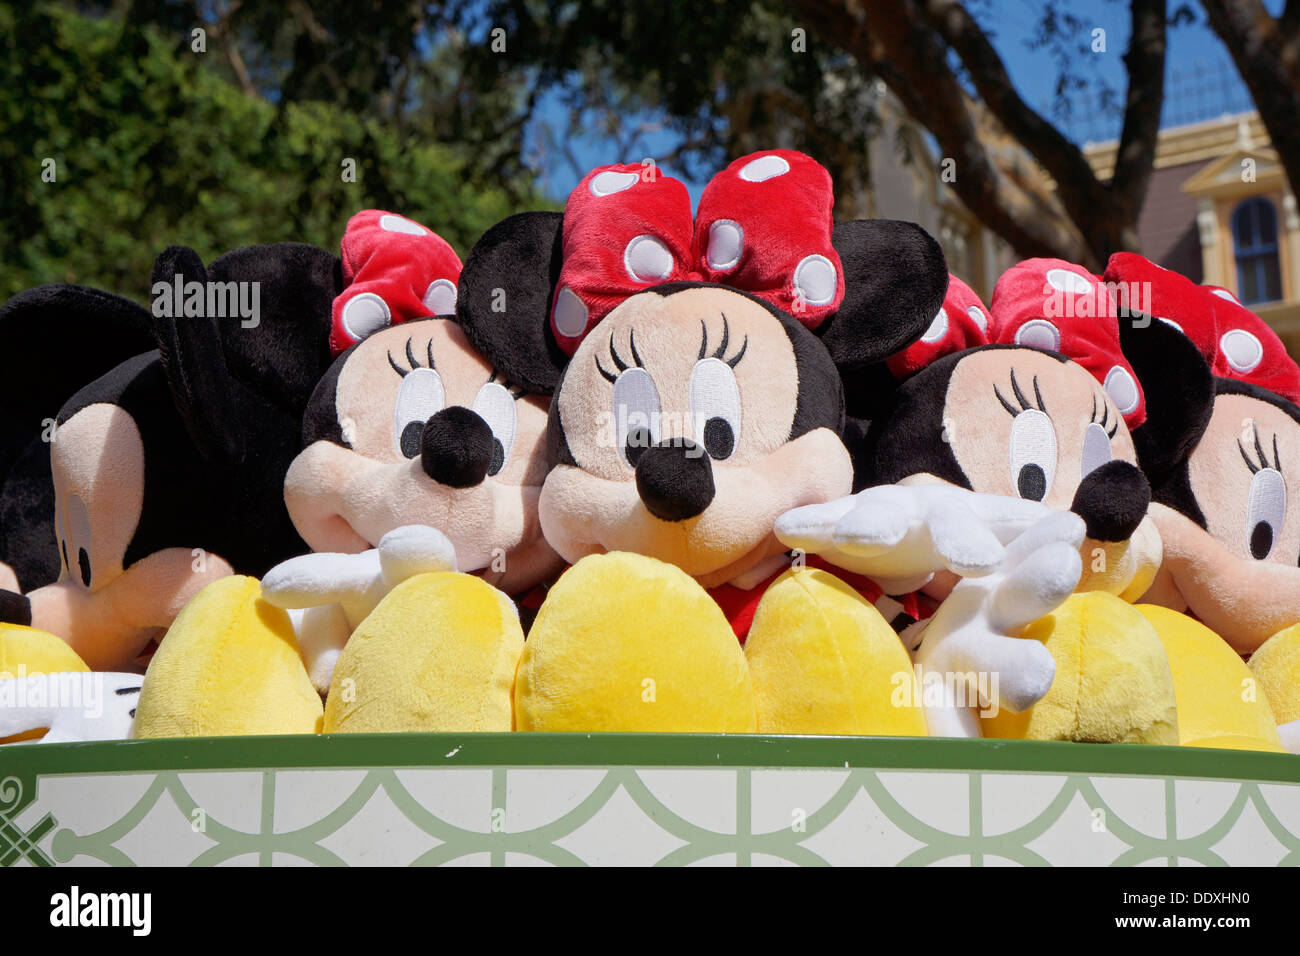 Minnie Mouse, Soft Toys, Disneyland Resort, Anaheim, California - Stock Image